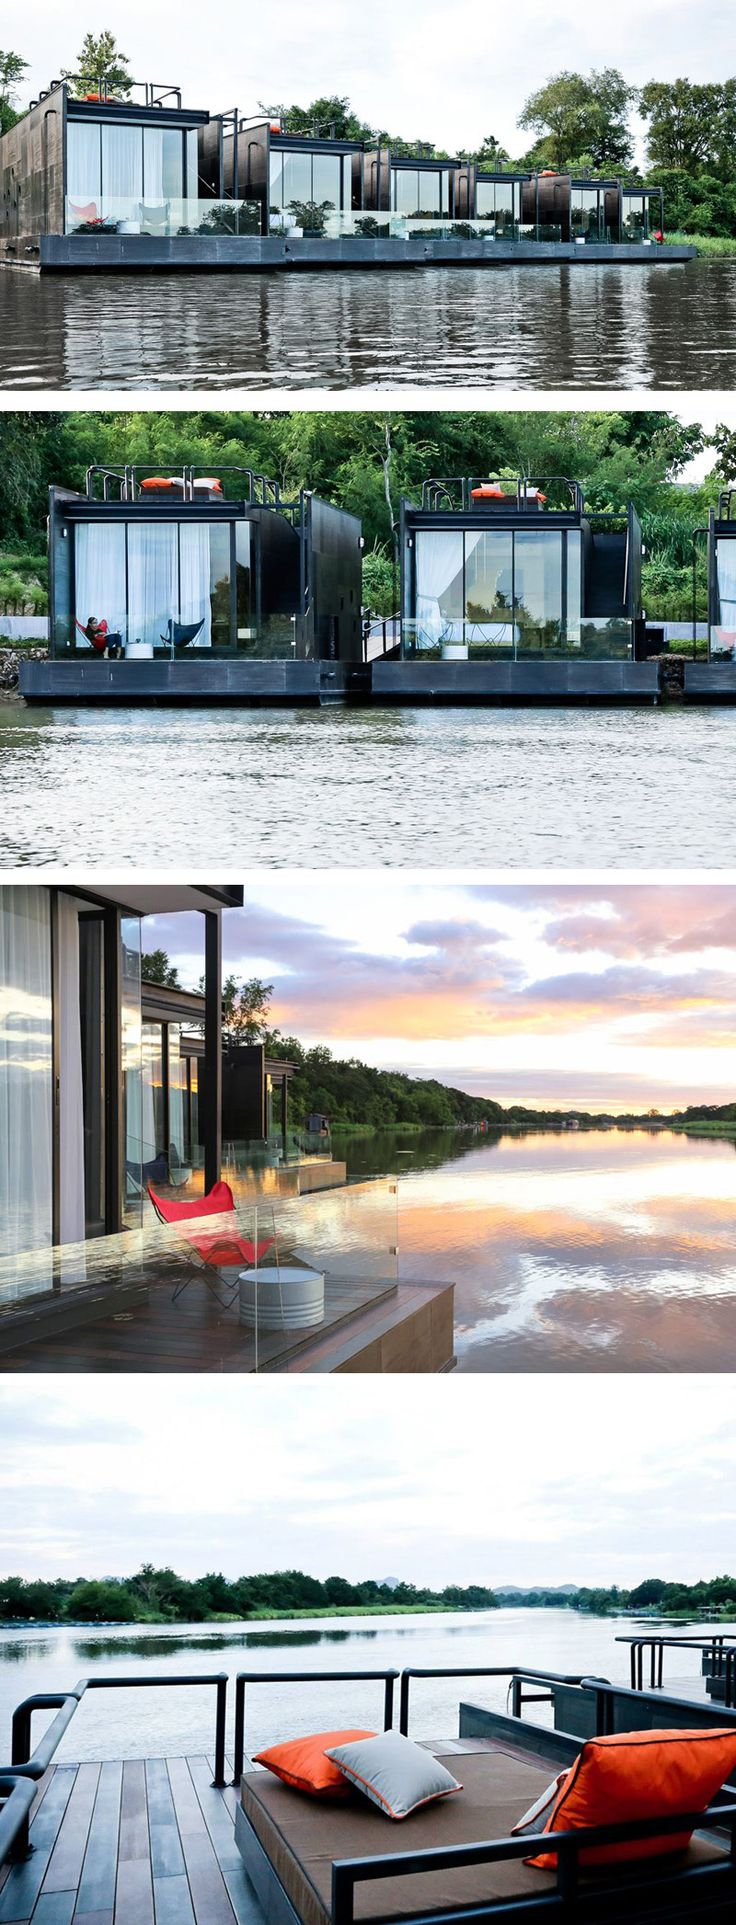 These floating holiday homes on the River